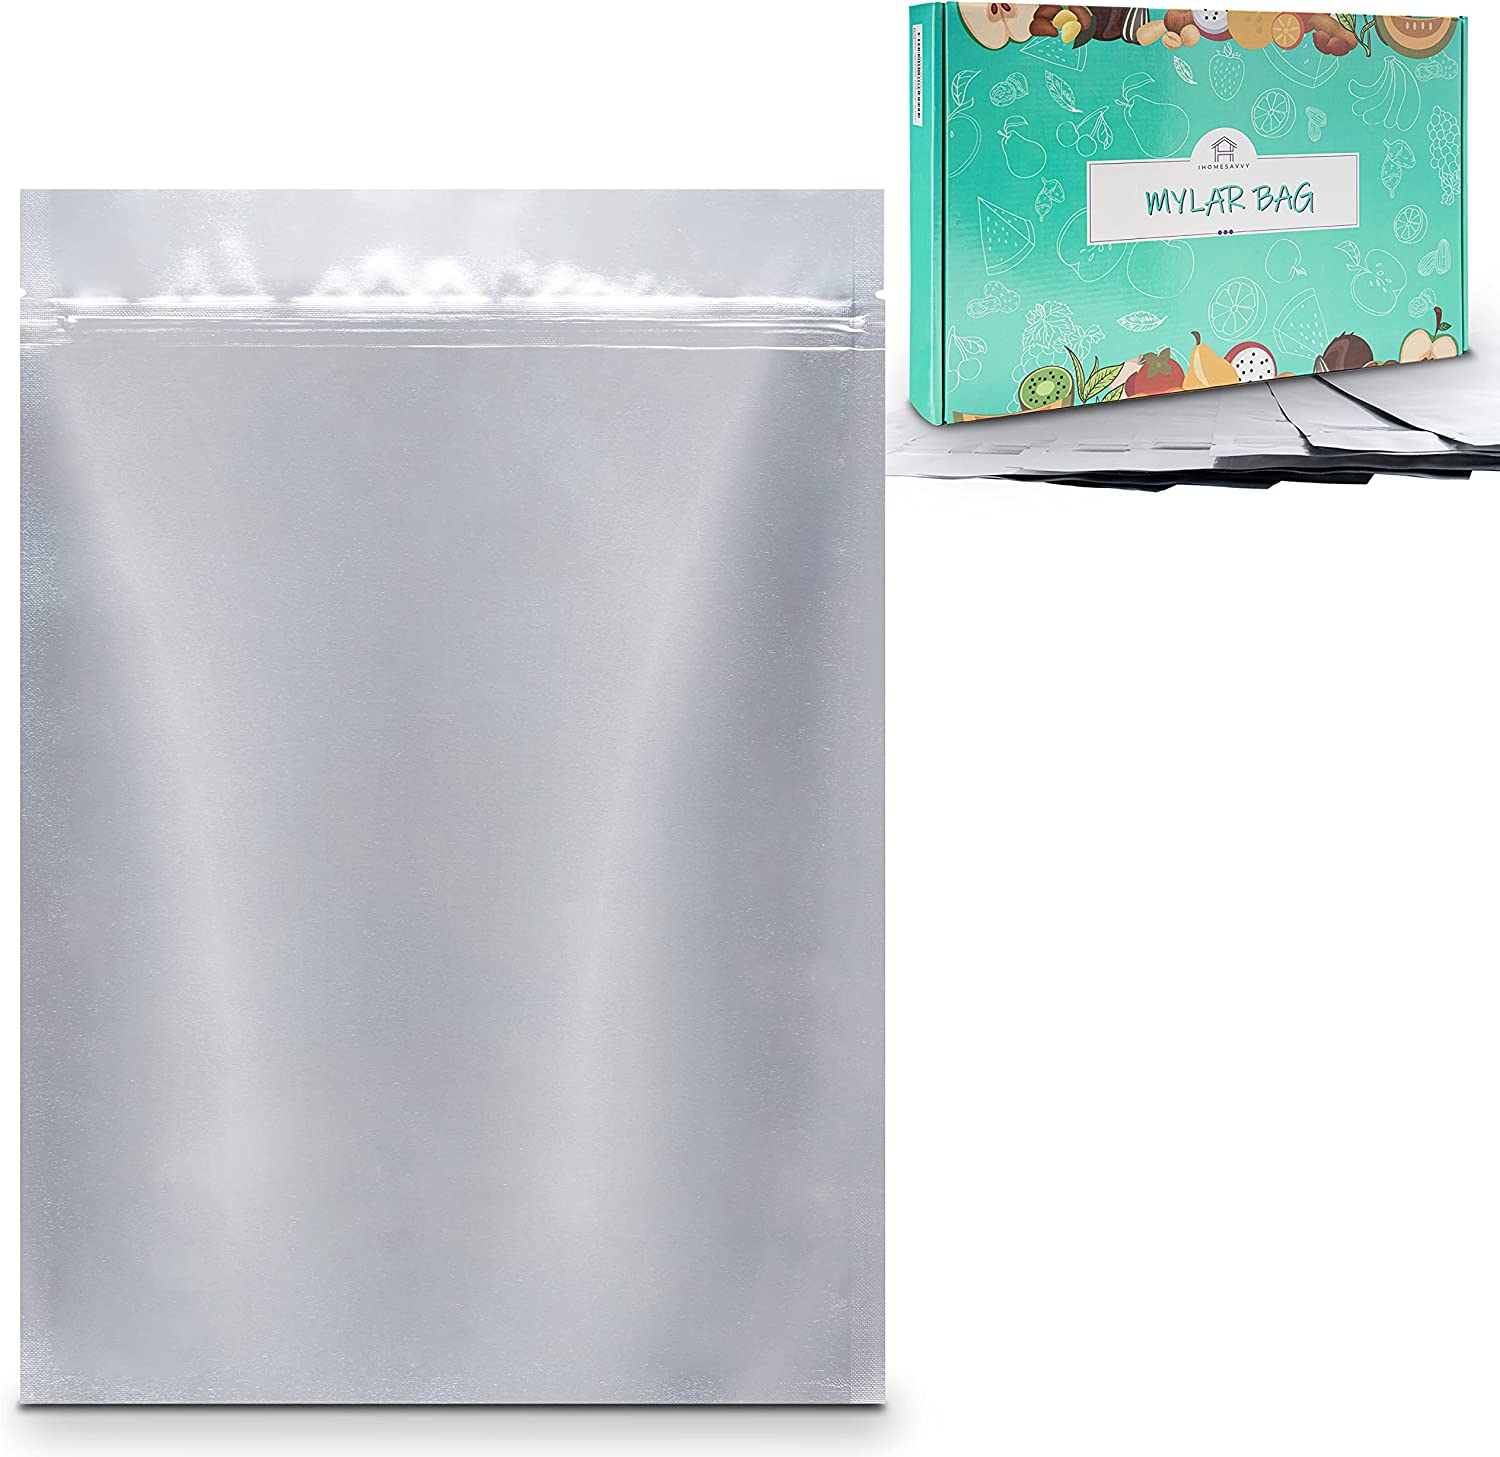 """IHOMESAVVY 100 Pack Mylar Bags – Flat Mylar Bags For Food Storage (Silver – 6"""" x 9"""") – Heat Sealable Bags - Long Term Food Storage & Food Survival"""